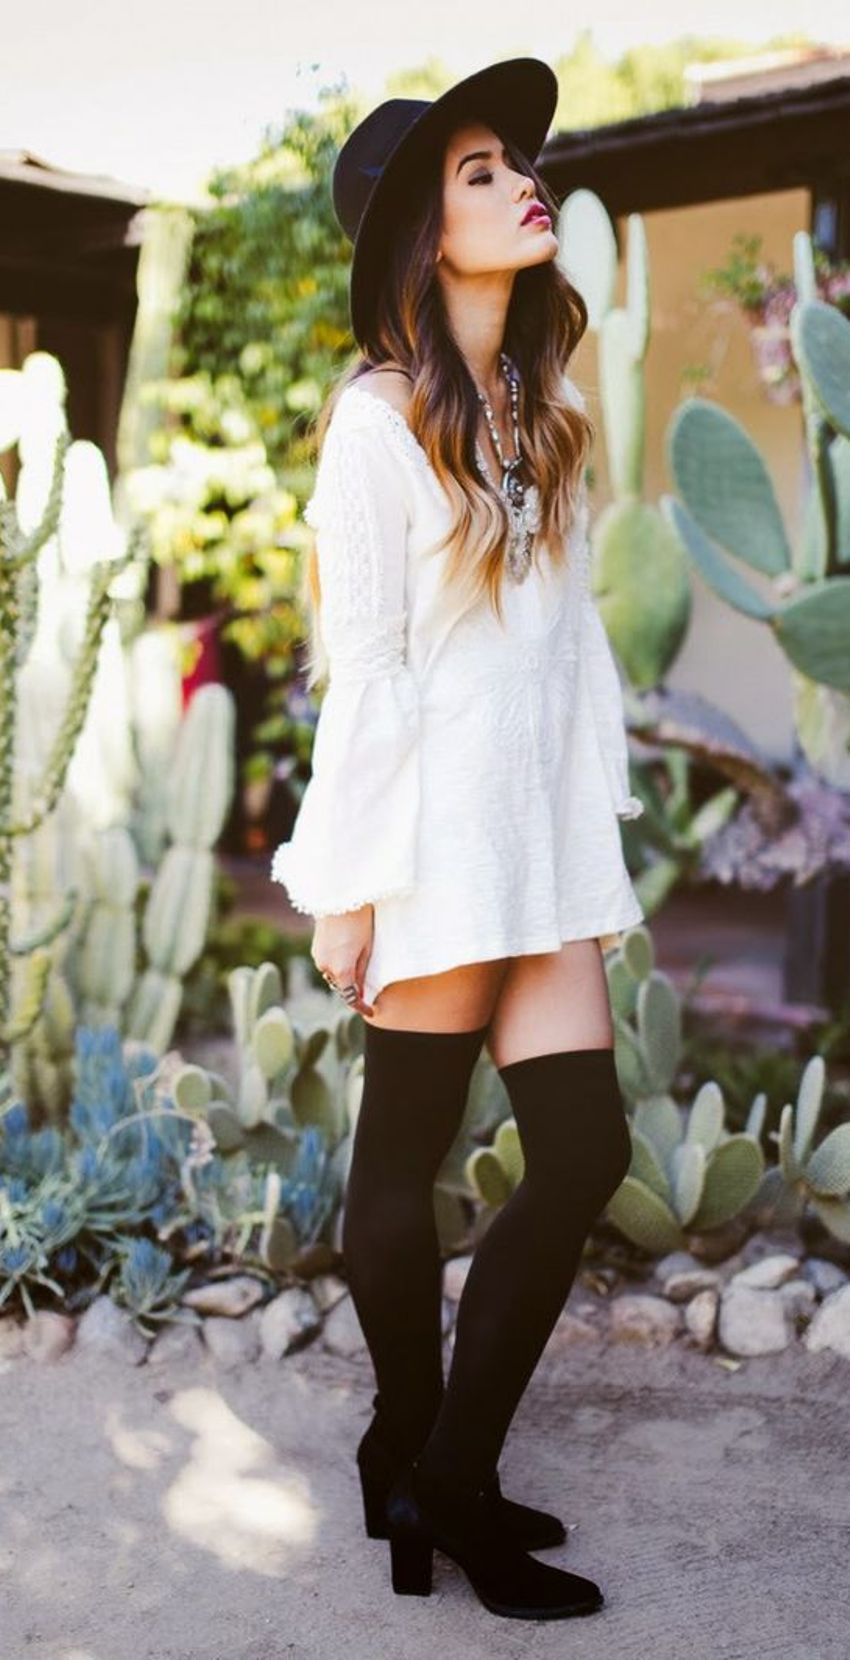 6 Stylish Outfits To Wear With Knee High Socks Style Wile